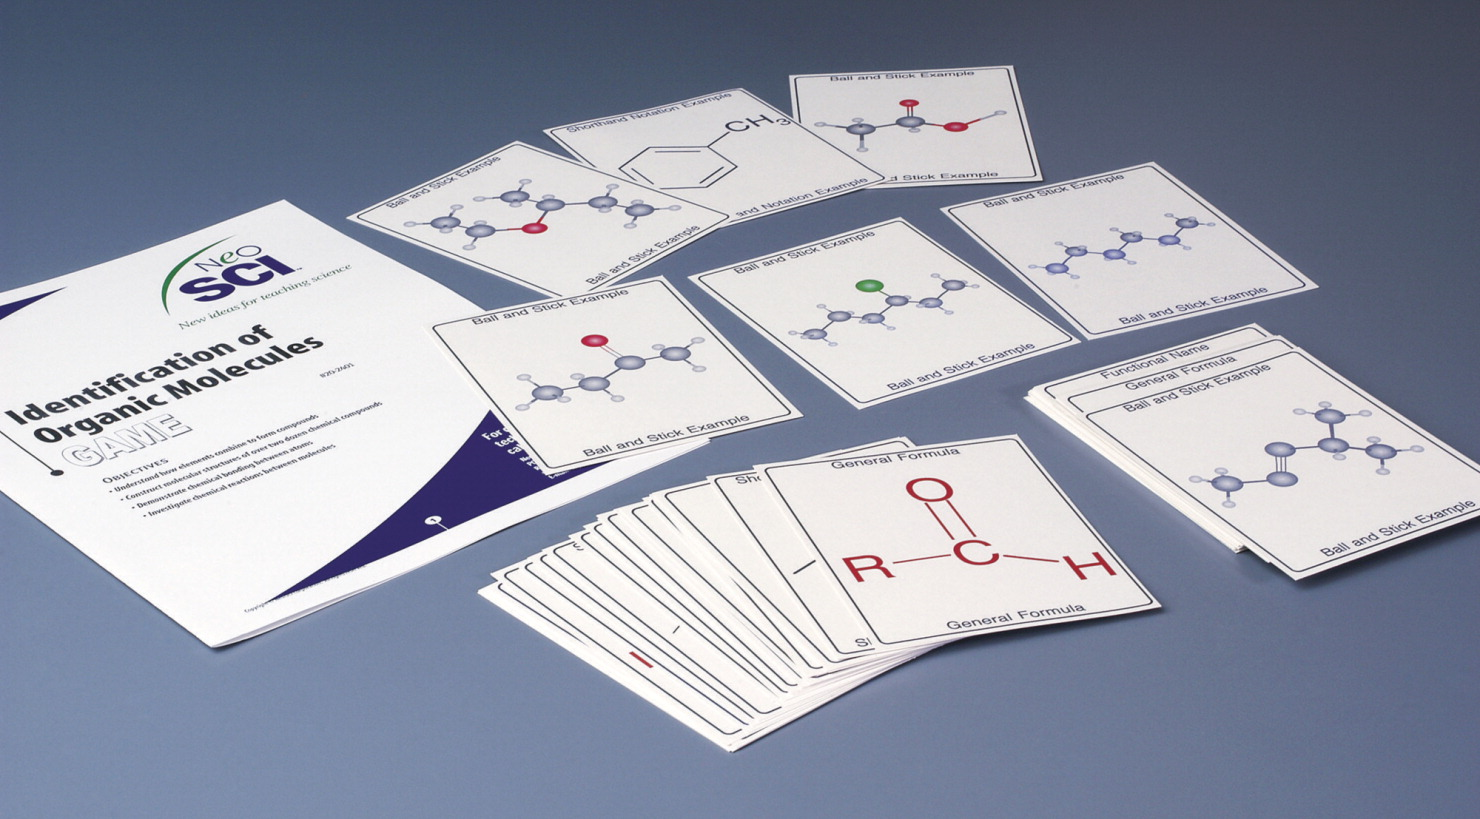 NeoSCI Identification of Organic Molecules Game - Classroom Set